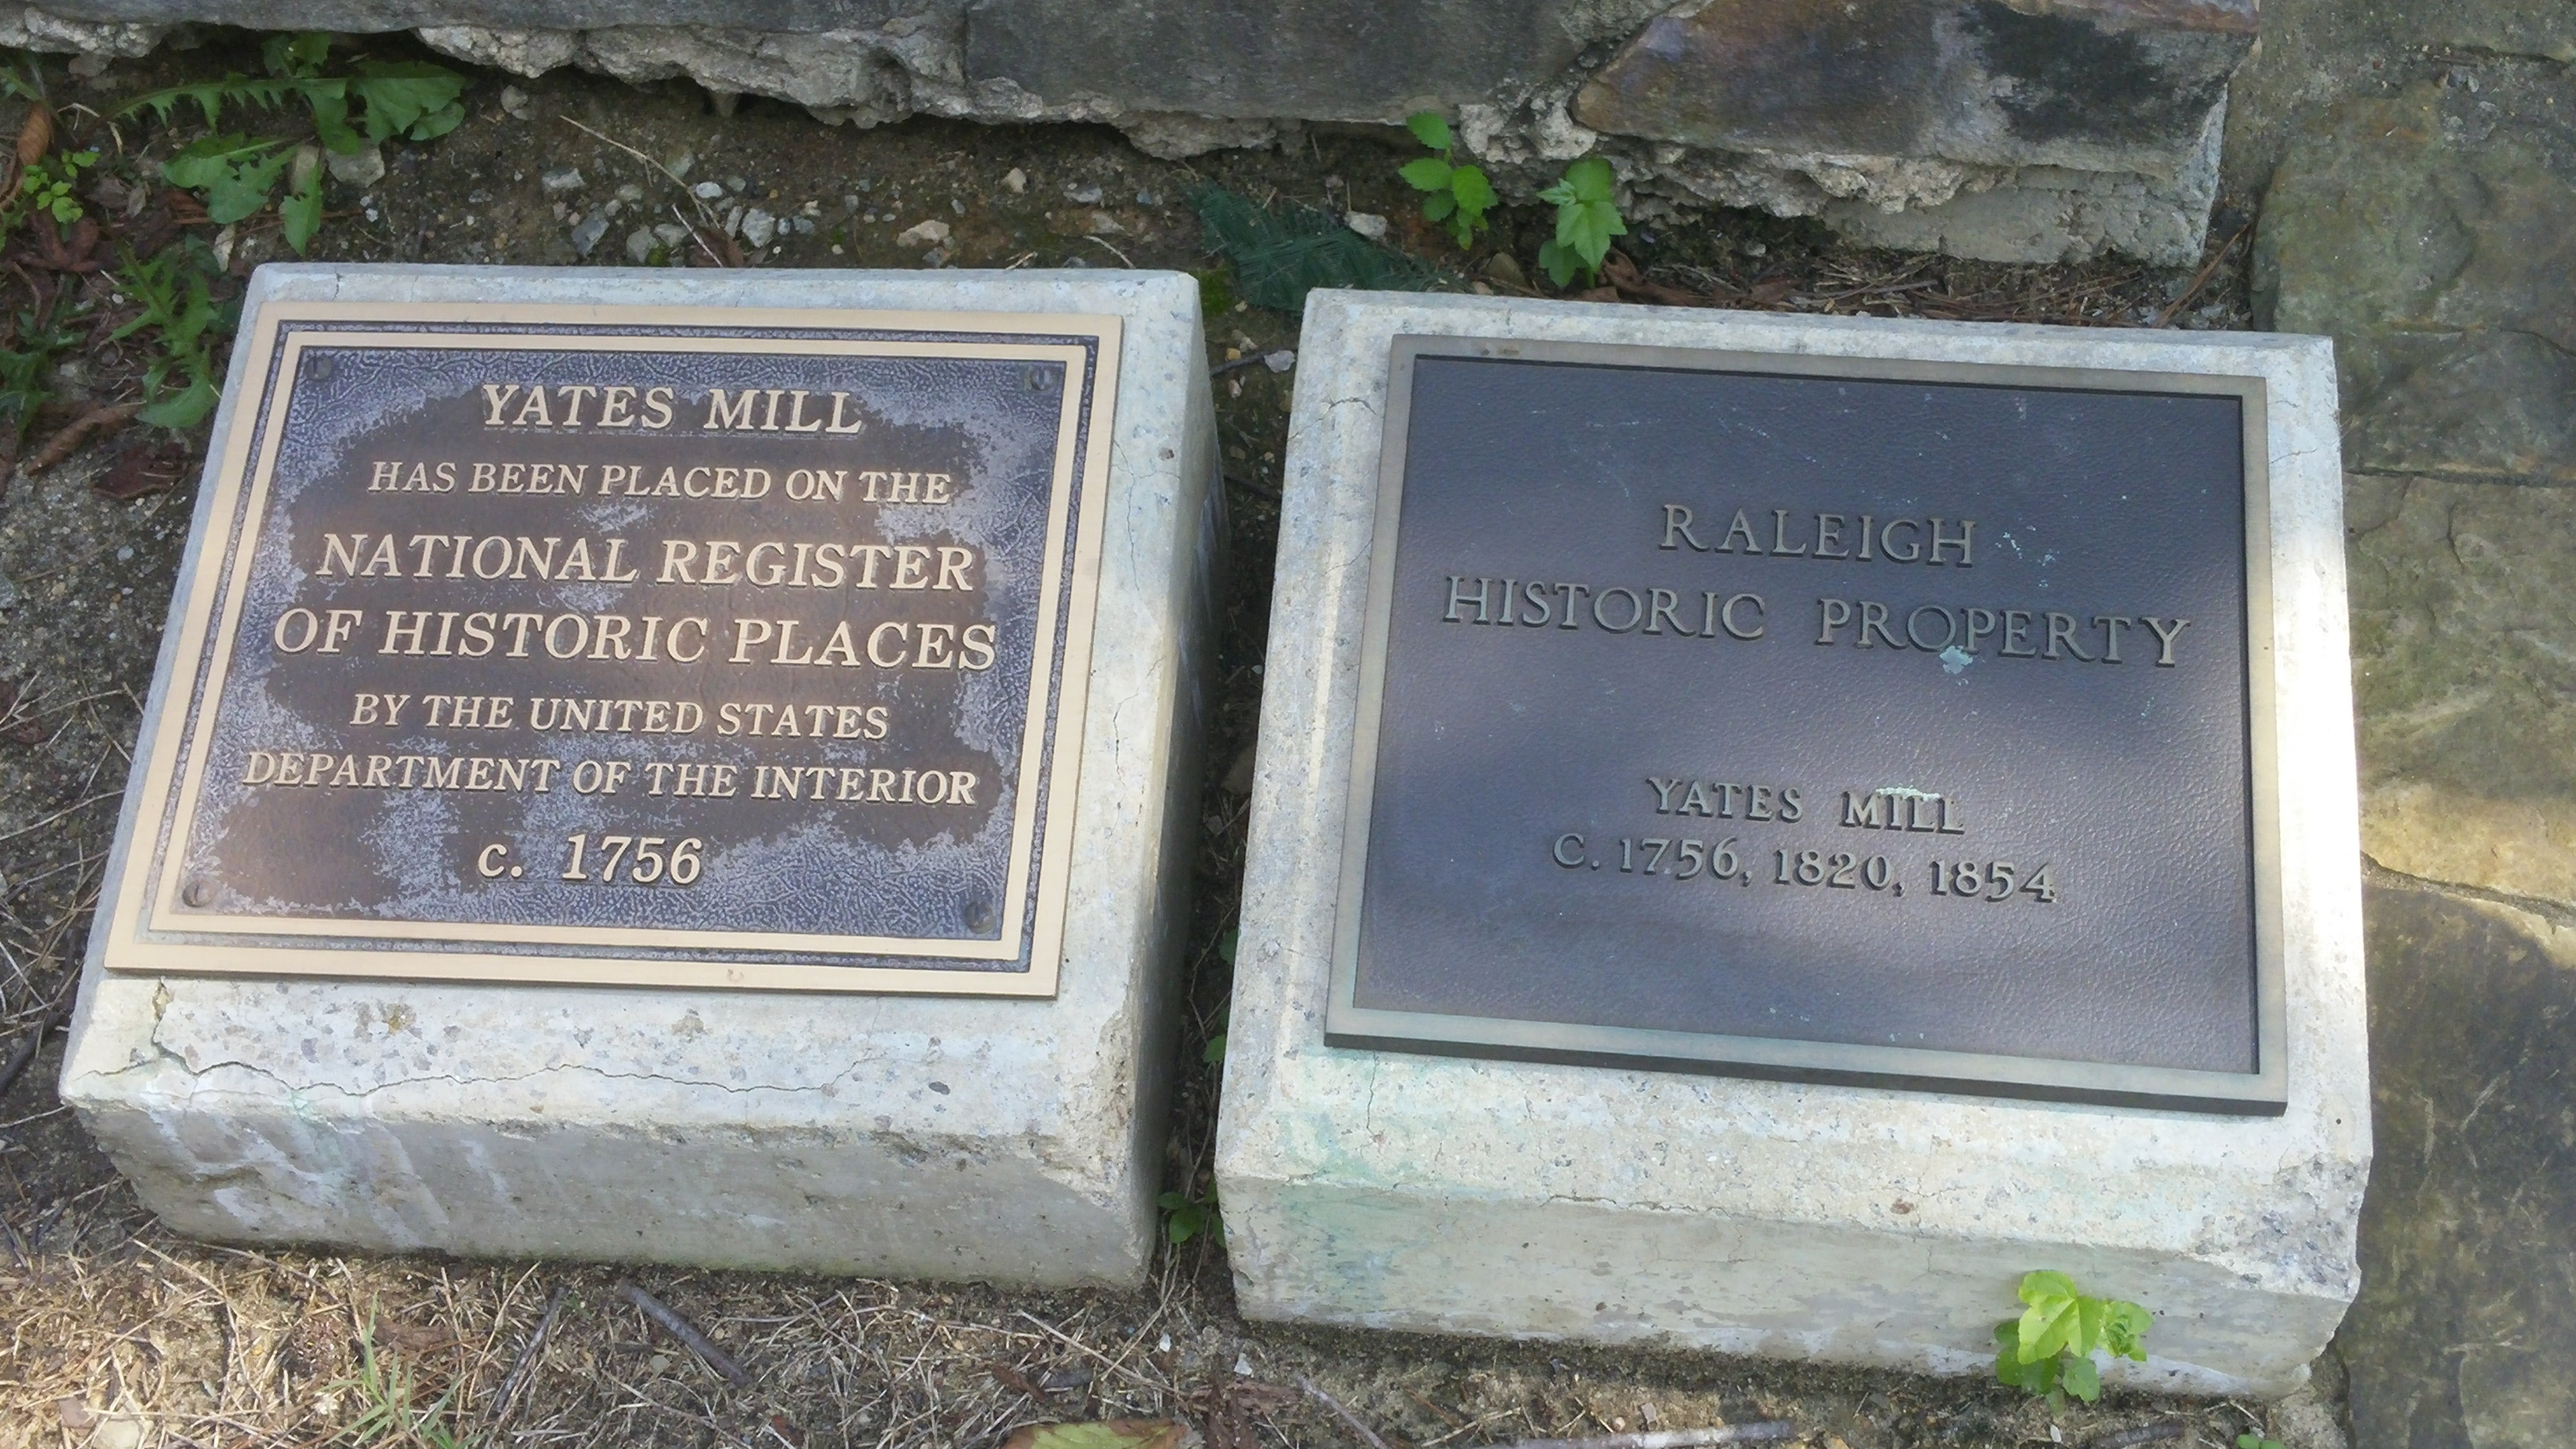 Plaques outside of the mill showing its adoption to the National Register of Historic Places.